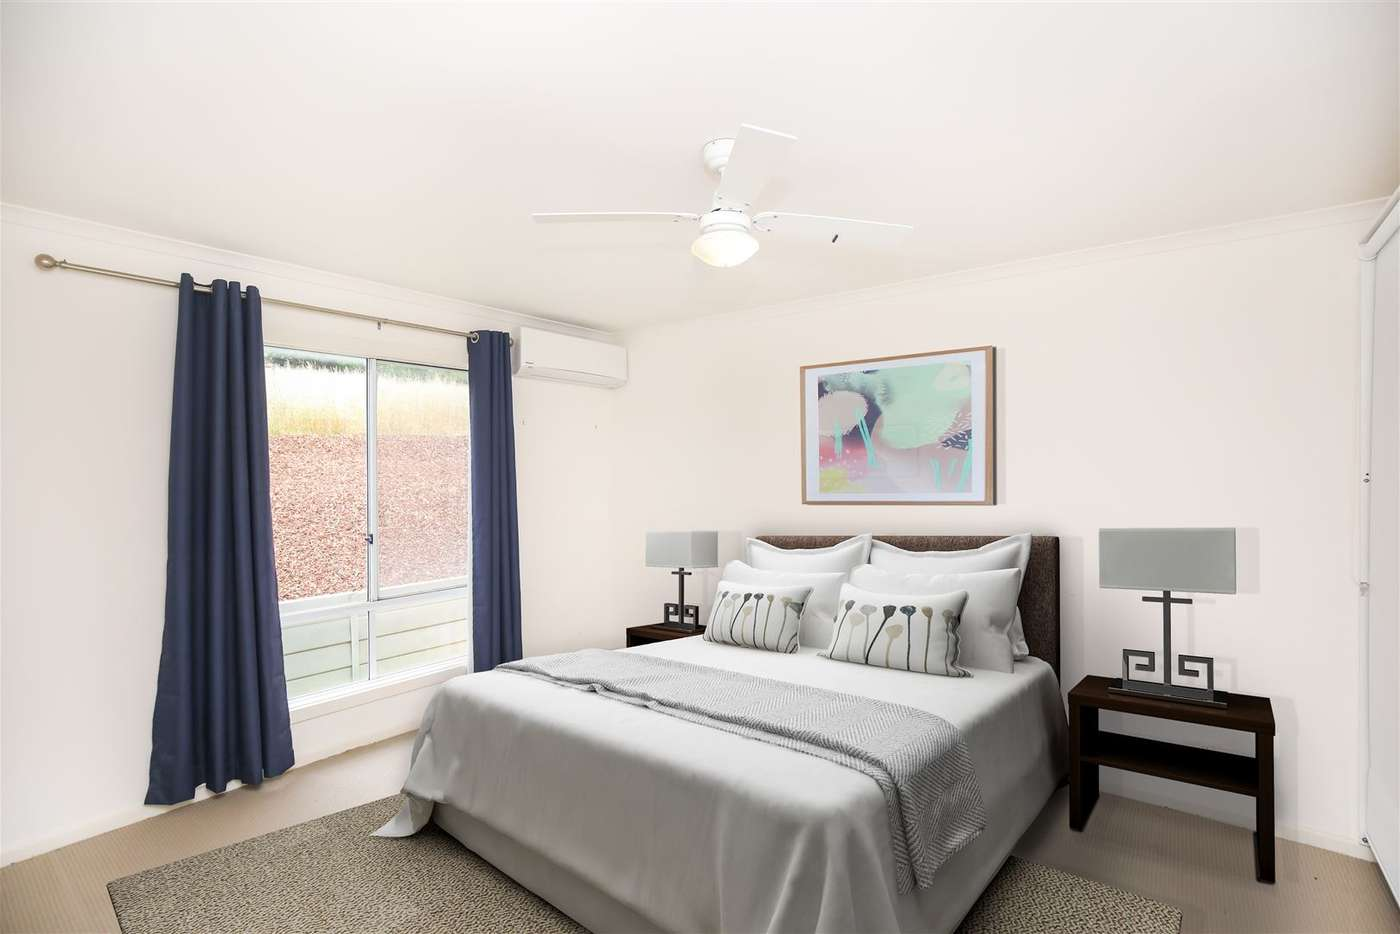 Sixth view of Homely house listing, 1/30 Princes Highway, Nairne SA 5252